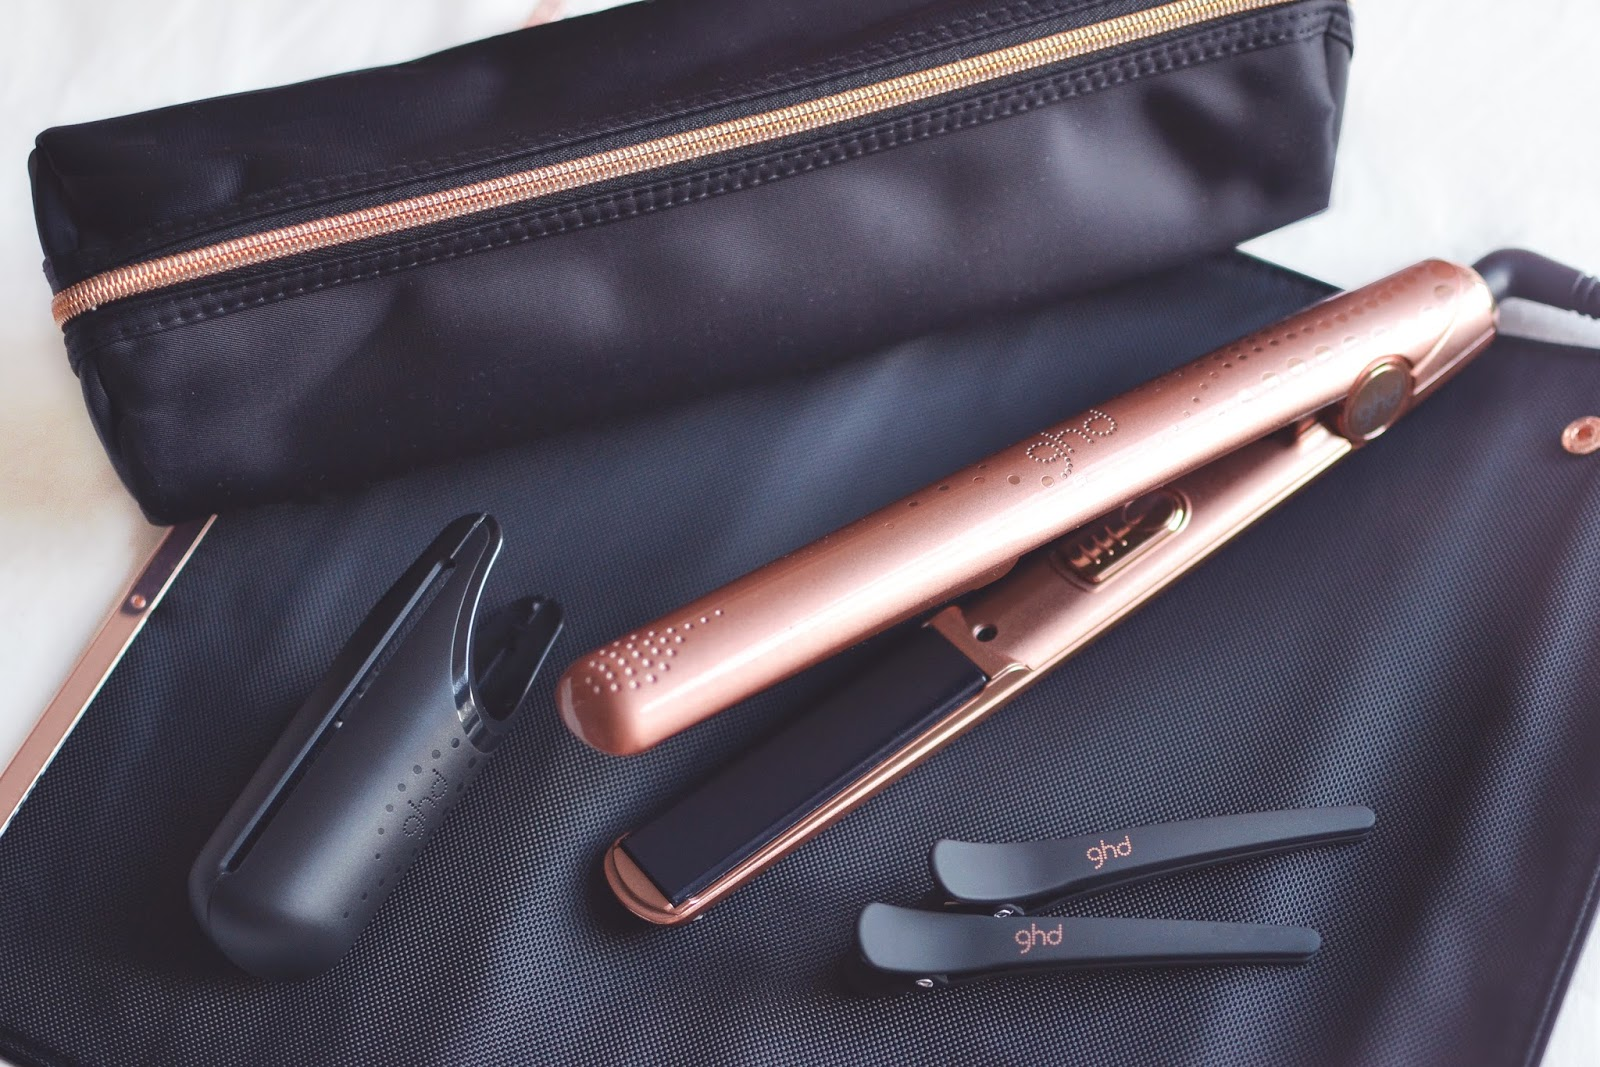 Ghd Straighteners Rose Gold Limited Edition Temporary